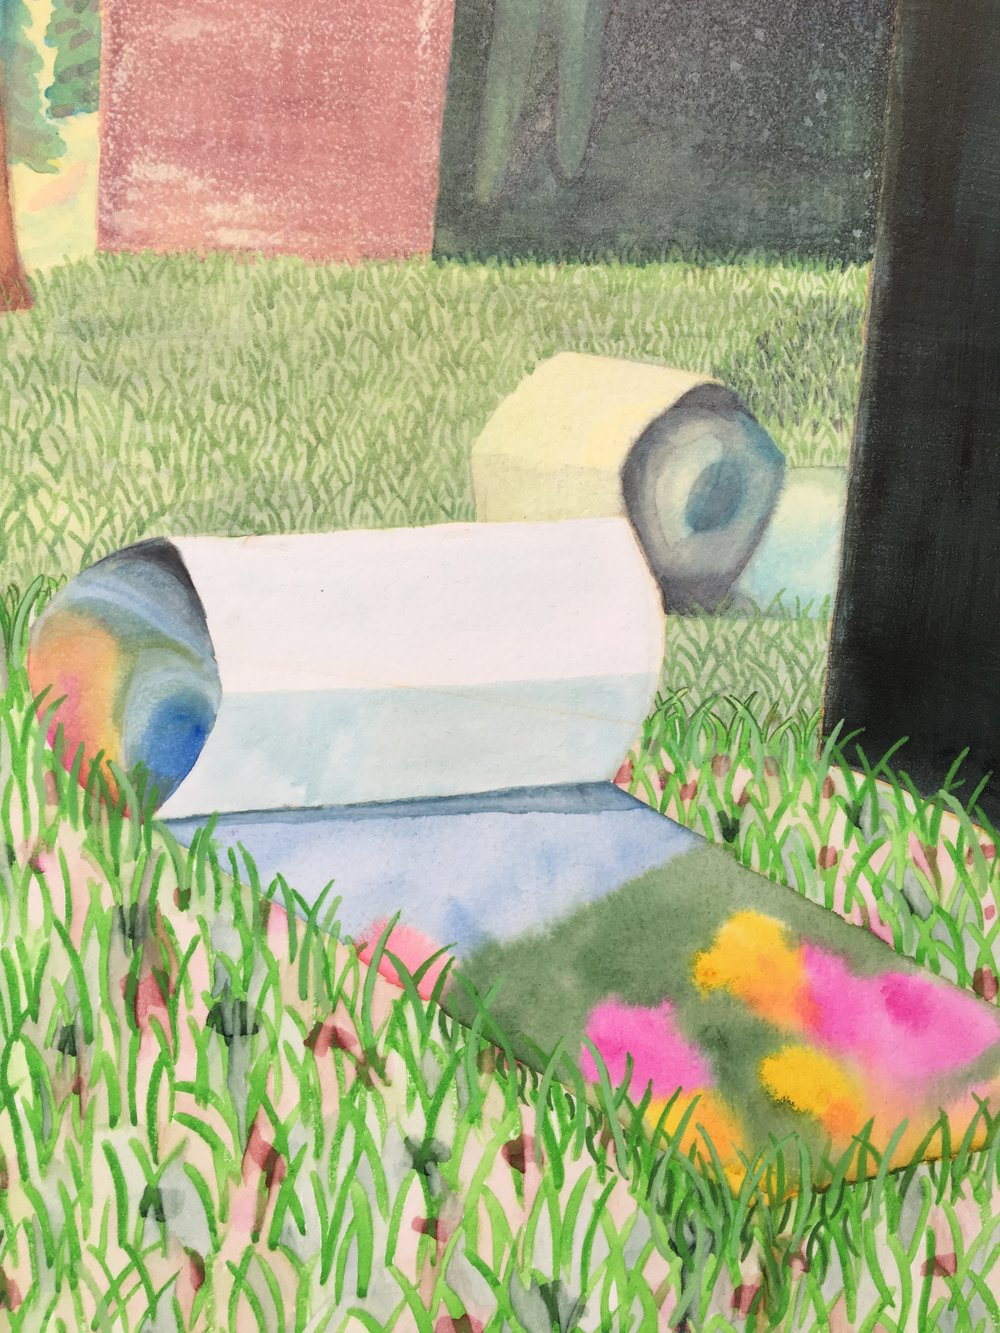 Rebecca Levitan,  First Day of Spring,  2017, watercolor on panel, 36.75 x 49 inches, $4500. (detail)